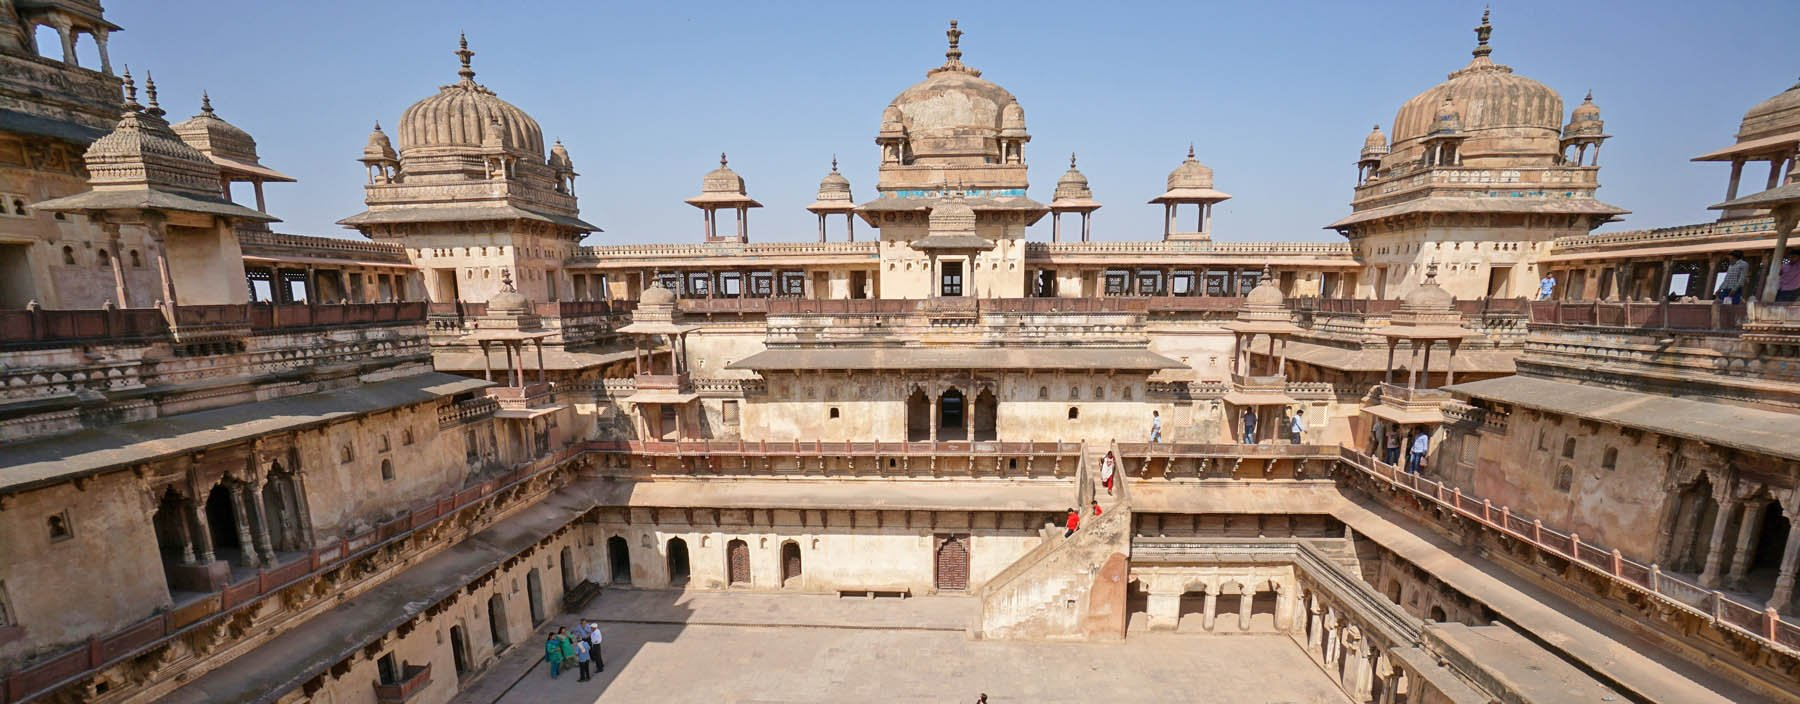 in, orchha, the orchha fort.jpg